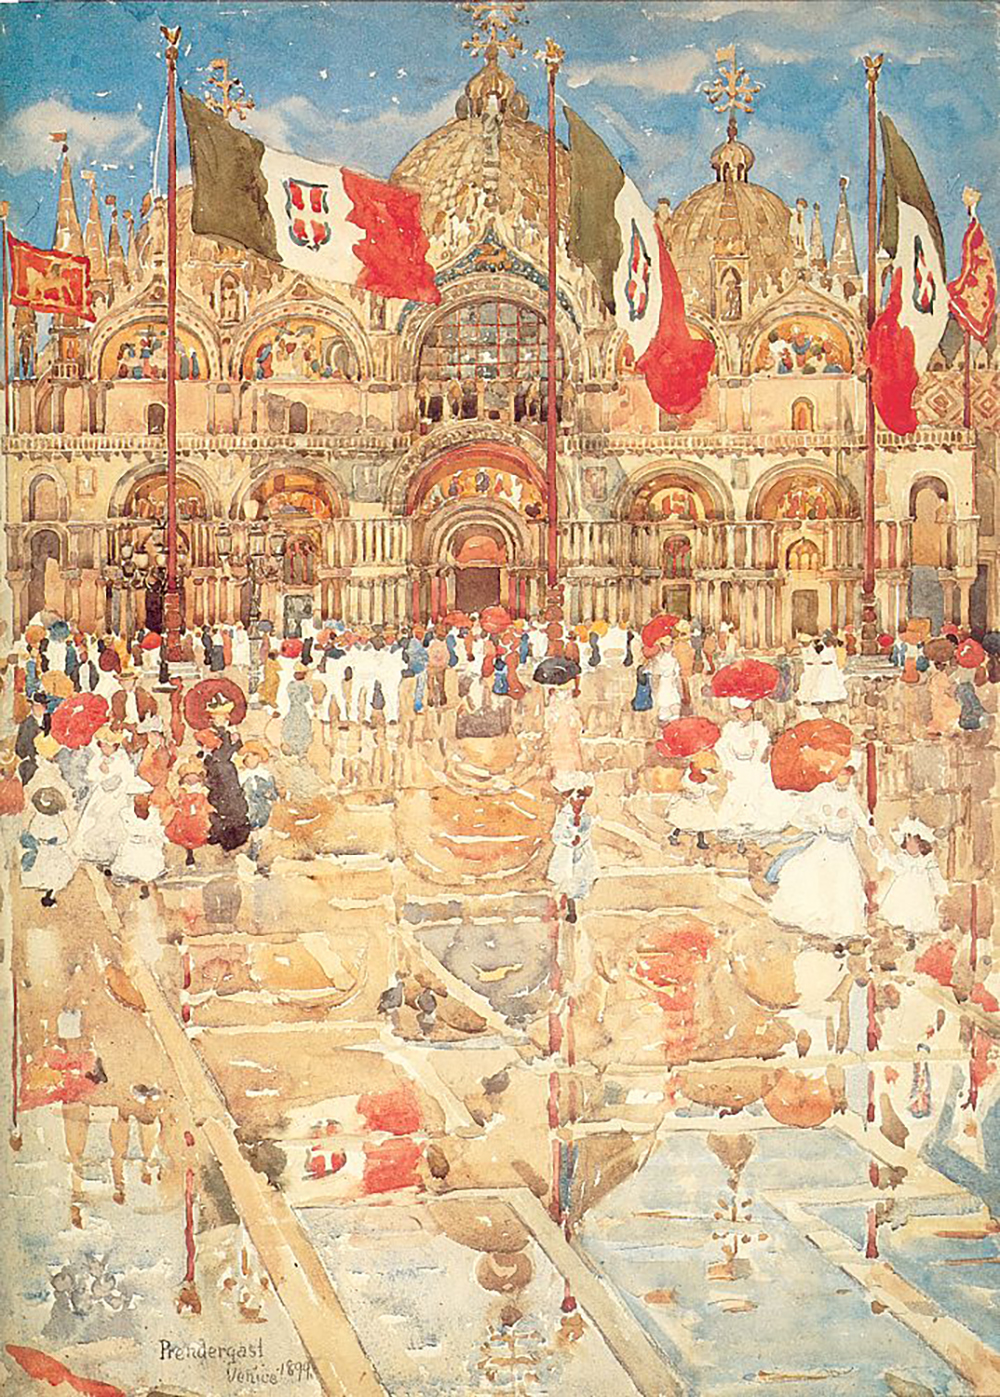 A modernist painting of the Plaza San Marco in Venice. A crowd of people in front of the church hold red umbrellas.